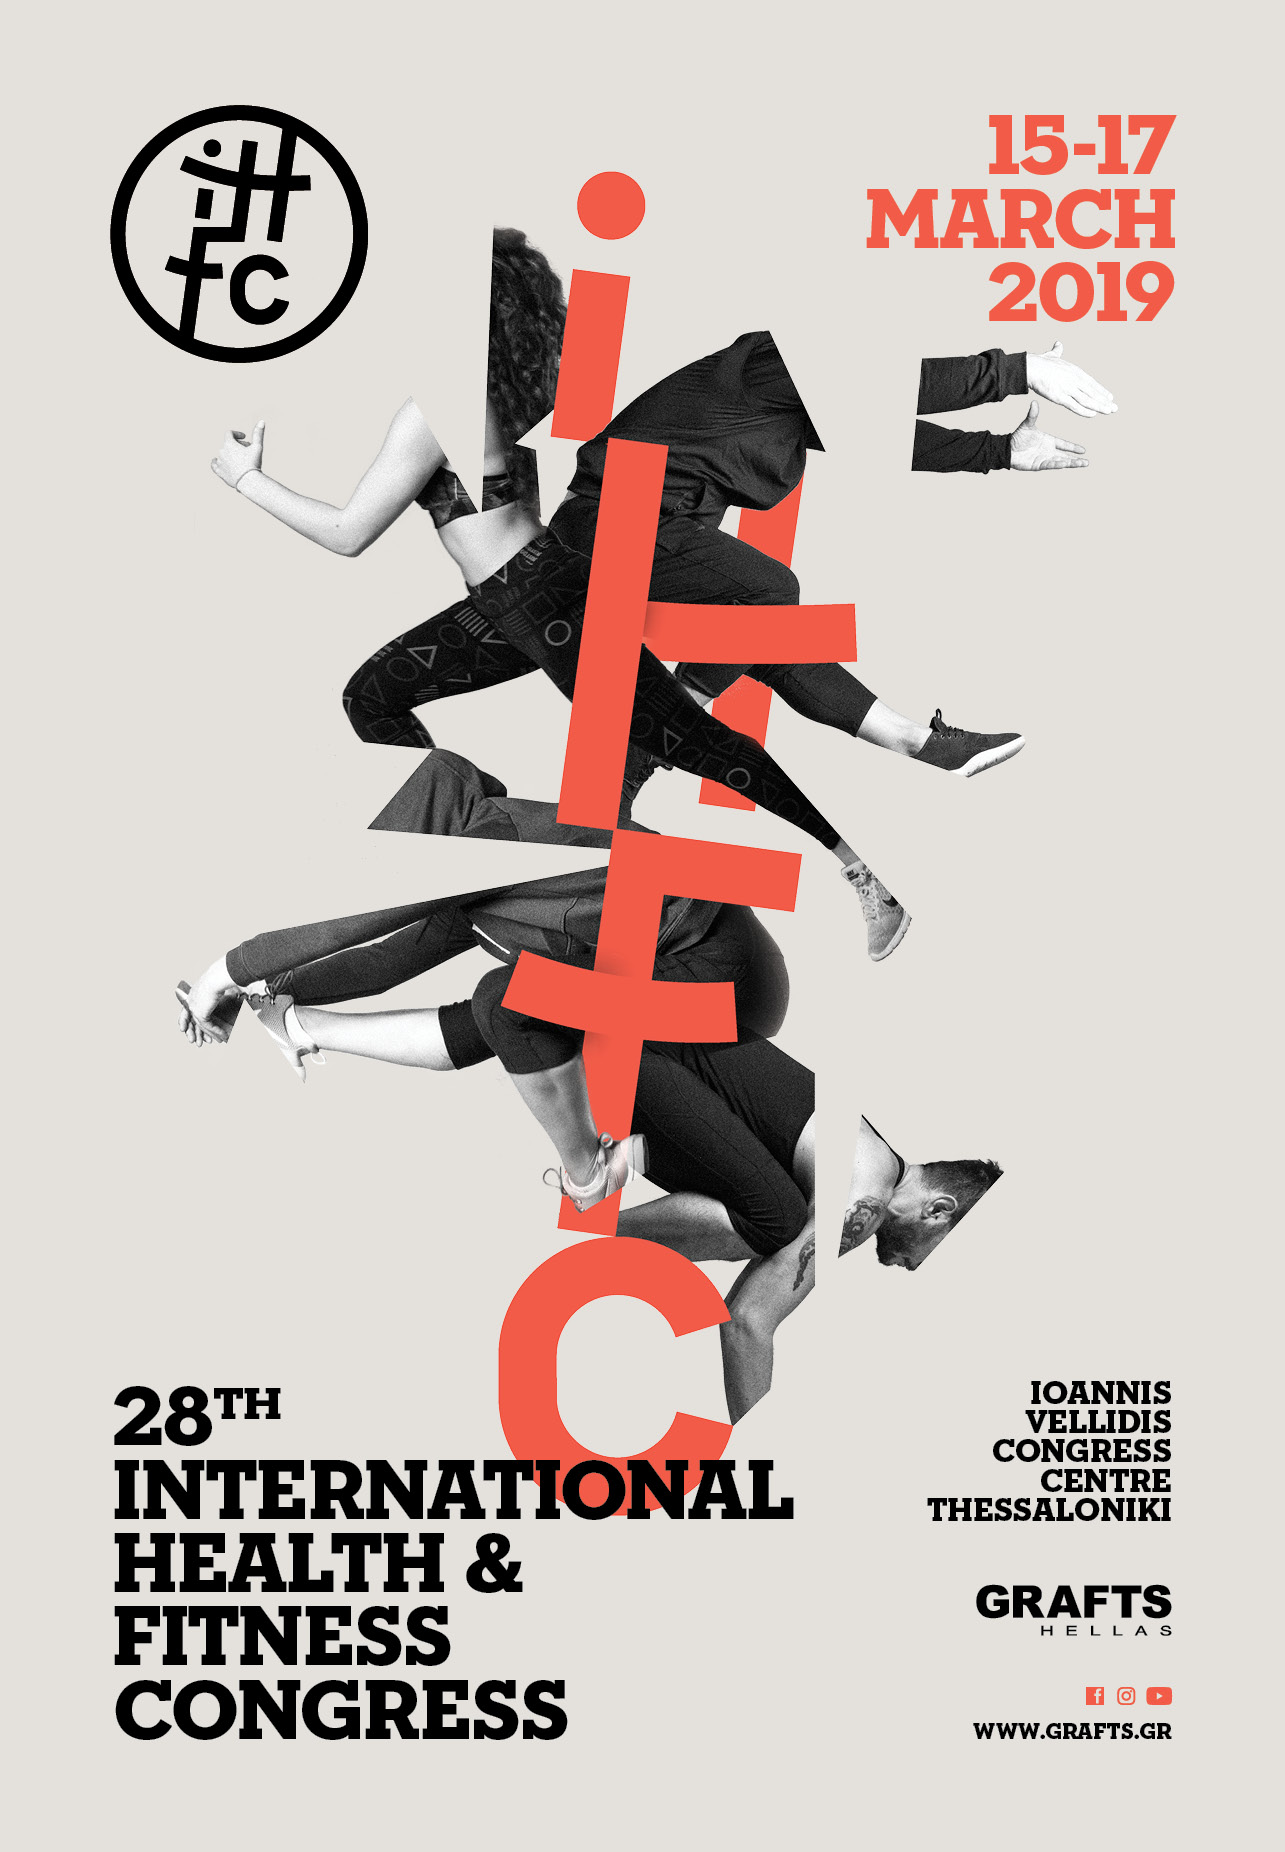 28th International Health & Fitness Congress by GRAFTS Hellas poster